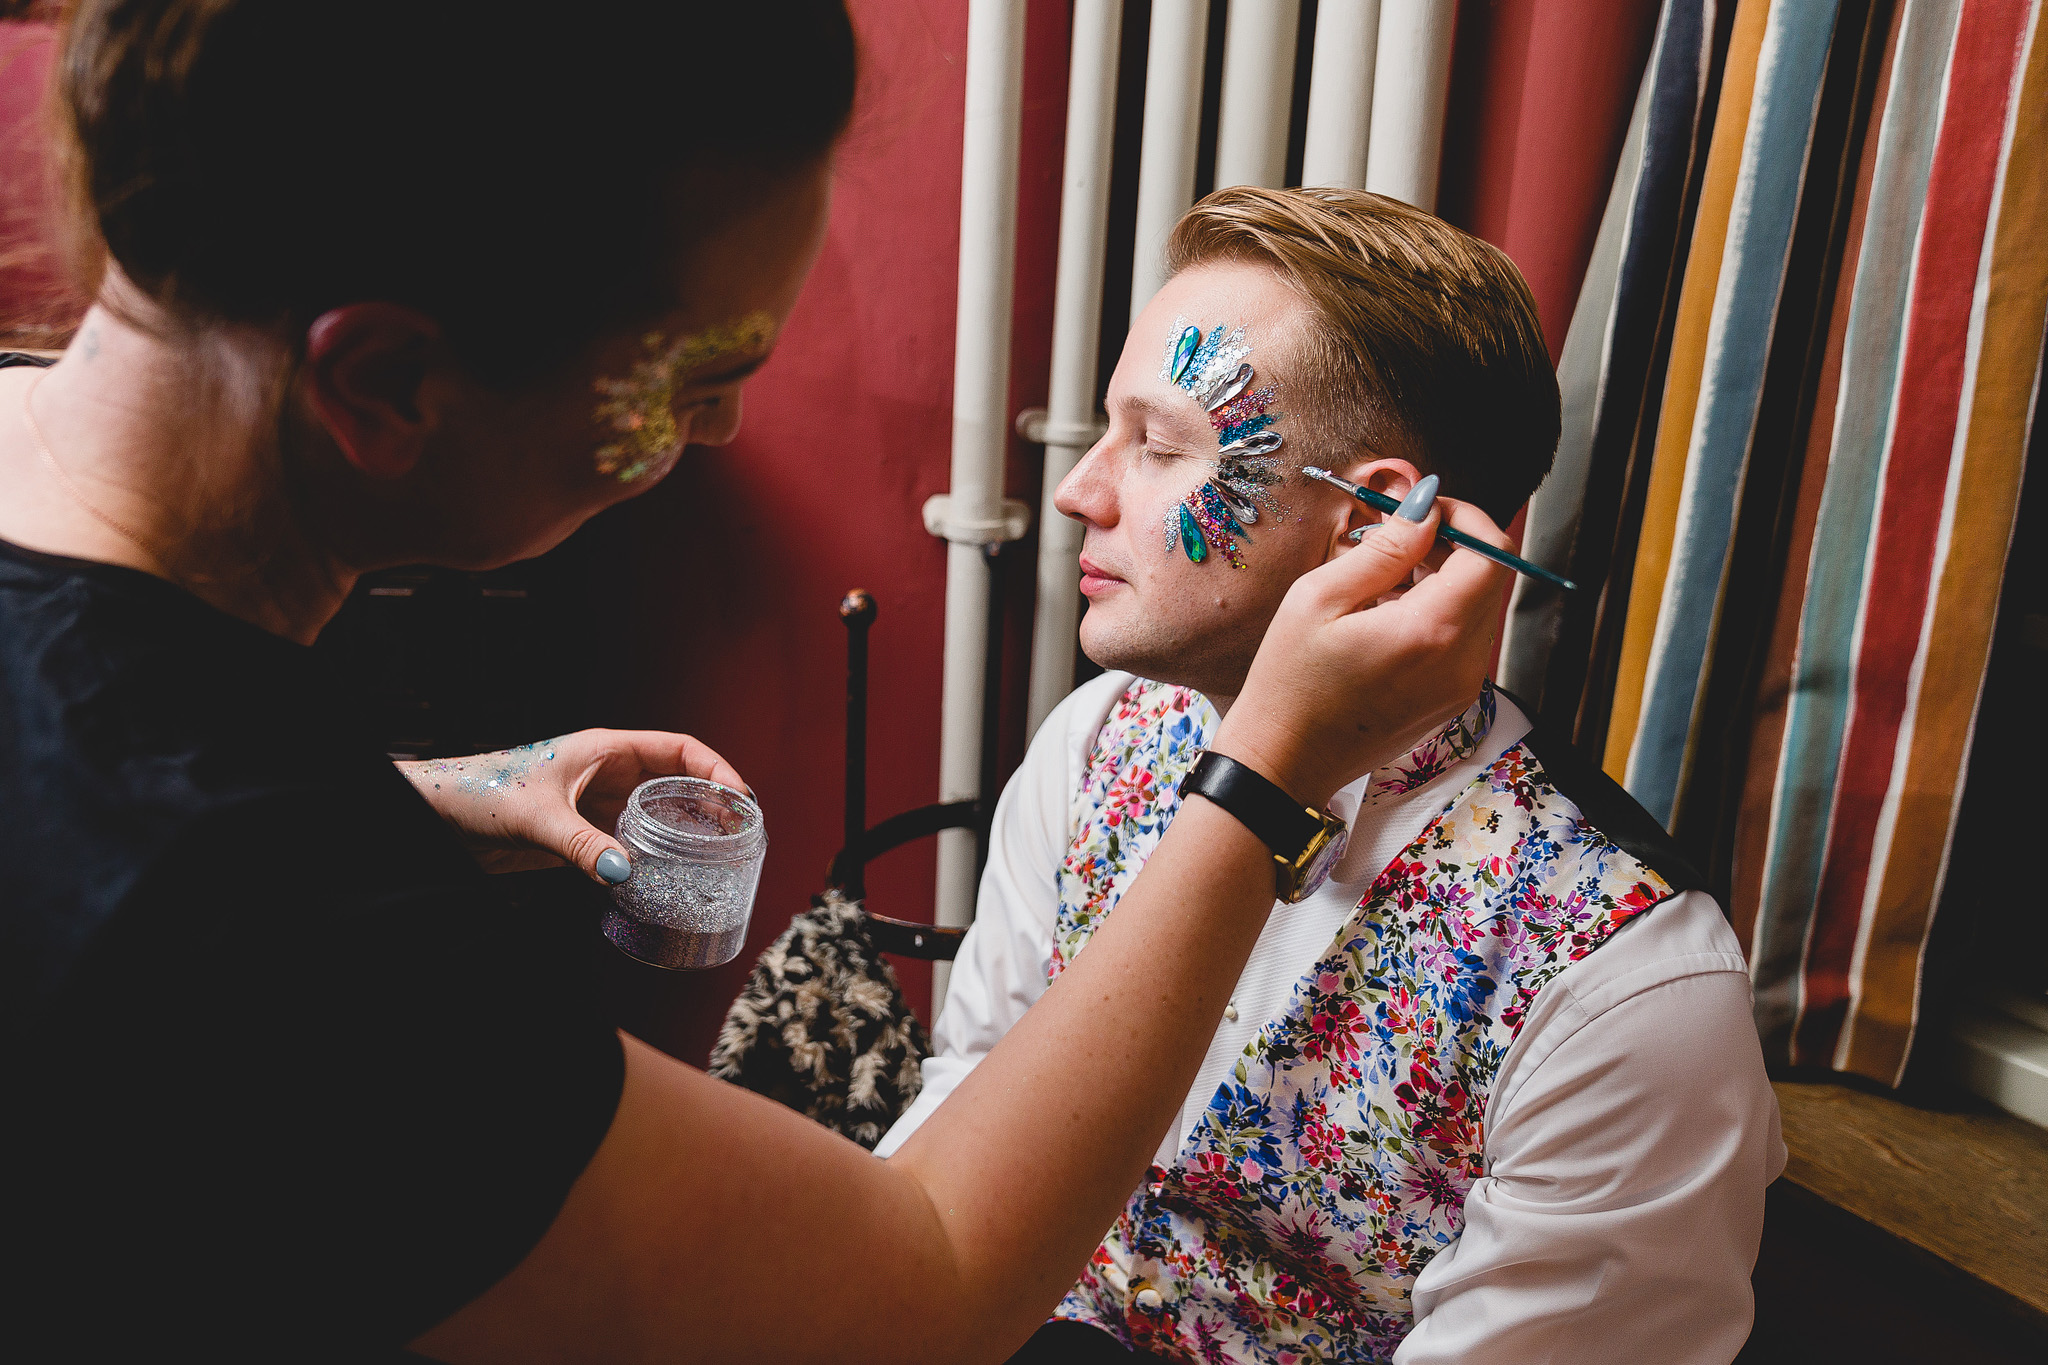 Natasha + Simon Wedding - UK - Bespoke hand painted print  photographer - James Rouse - The glitter bar - Love Moi Makeup